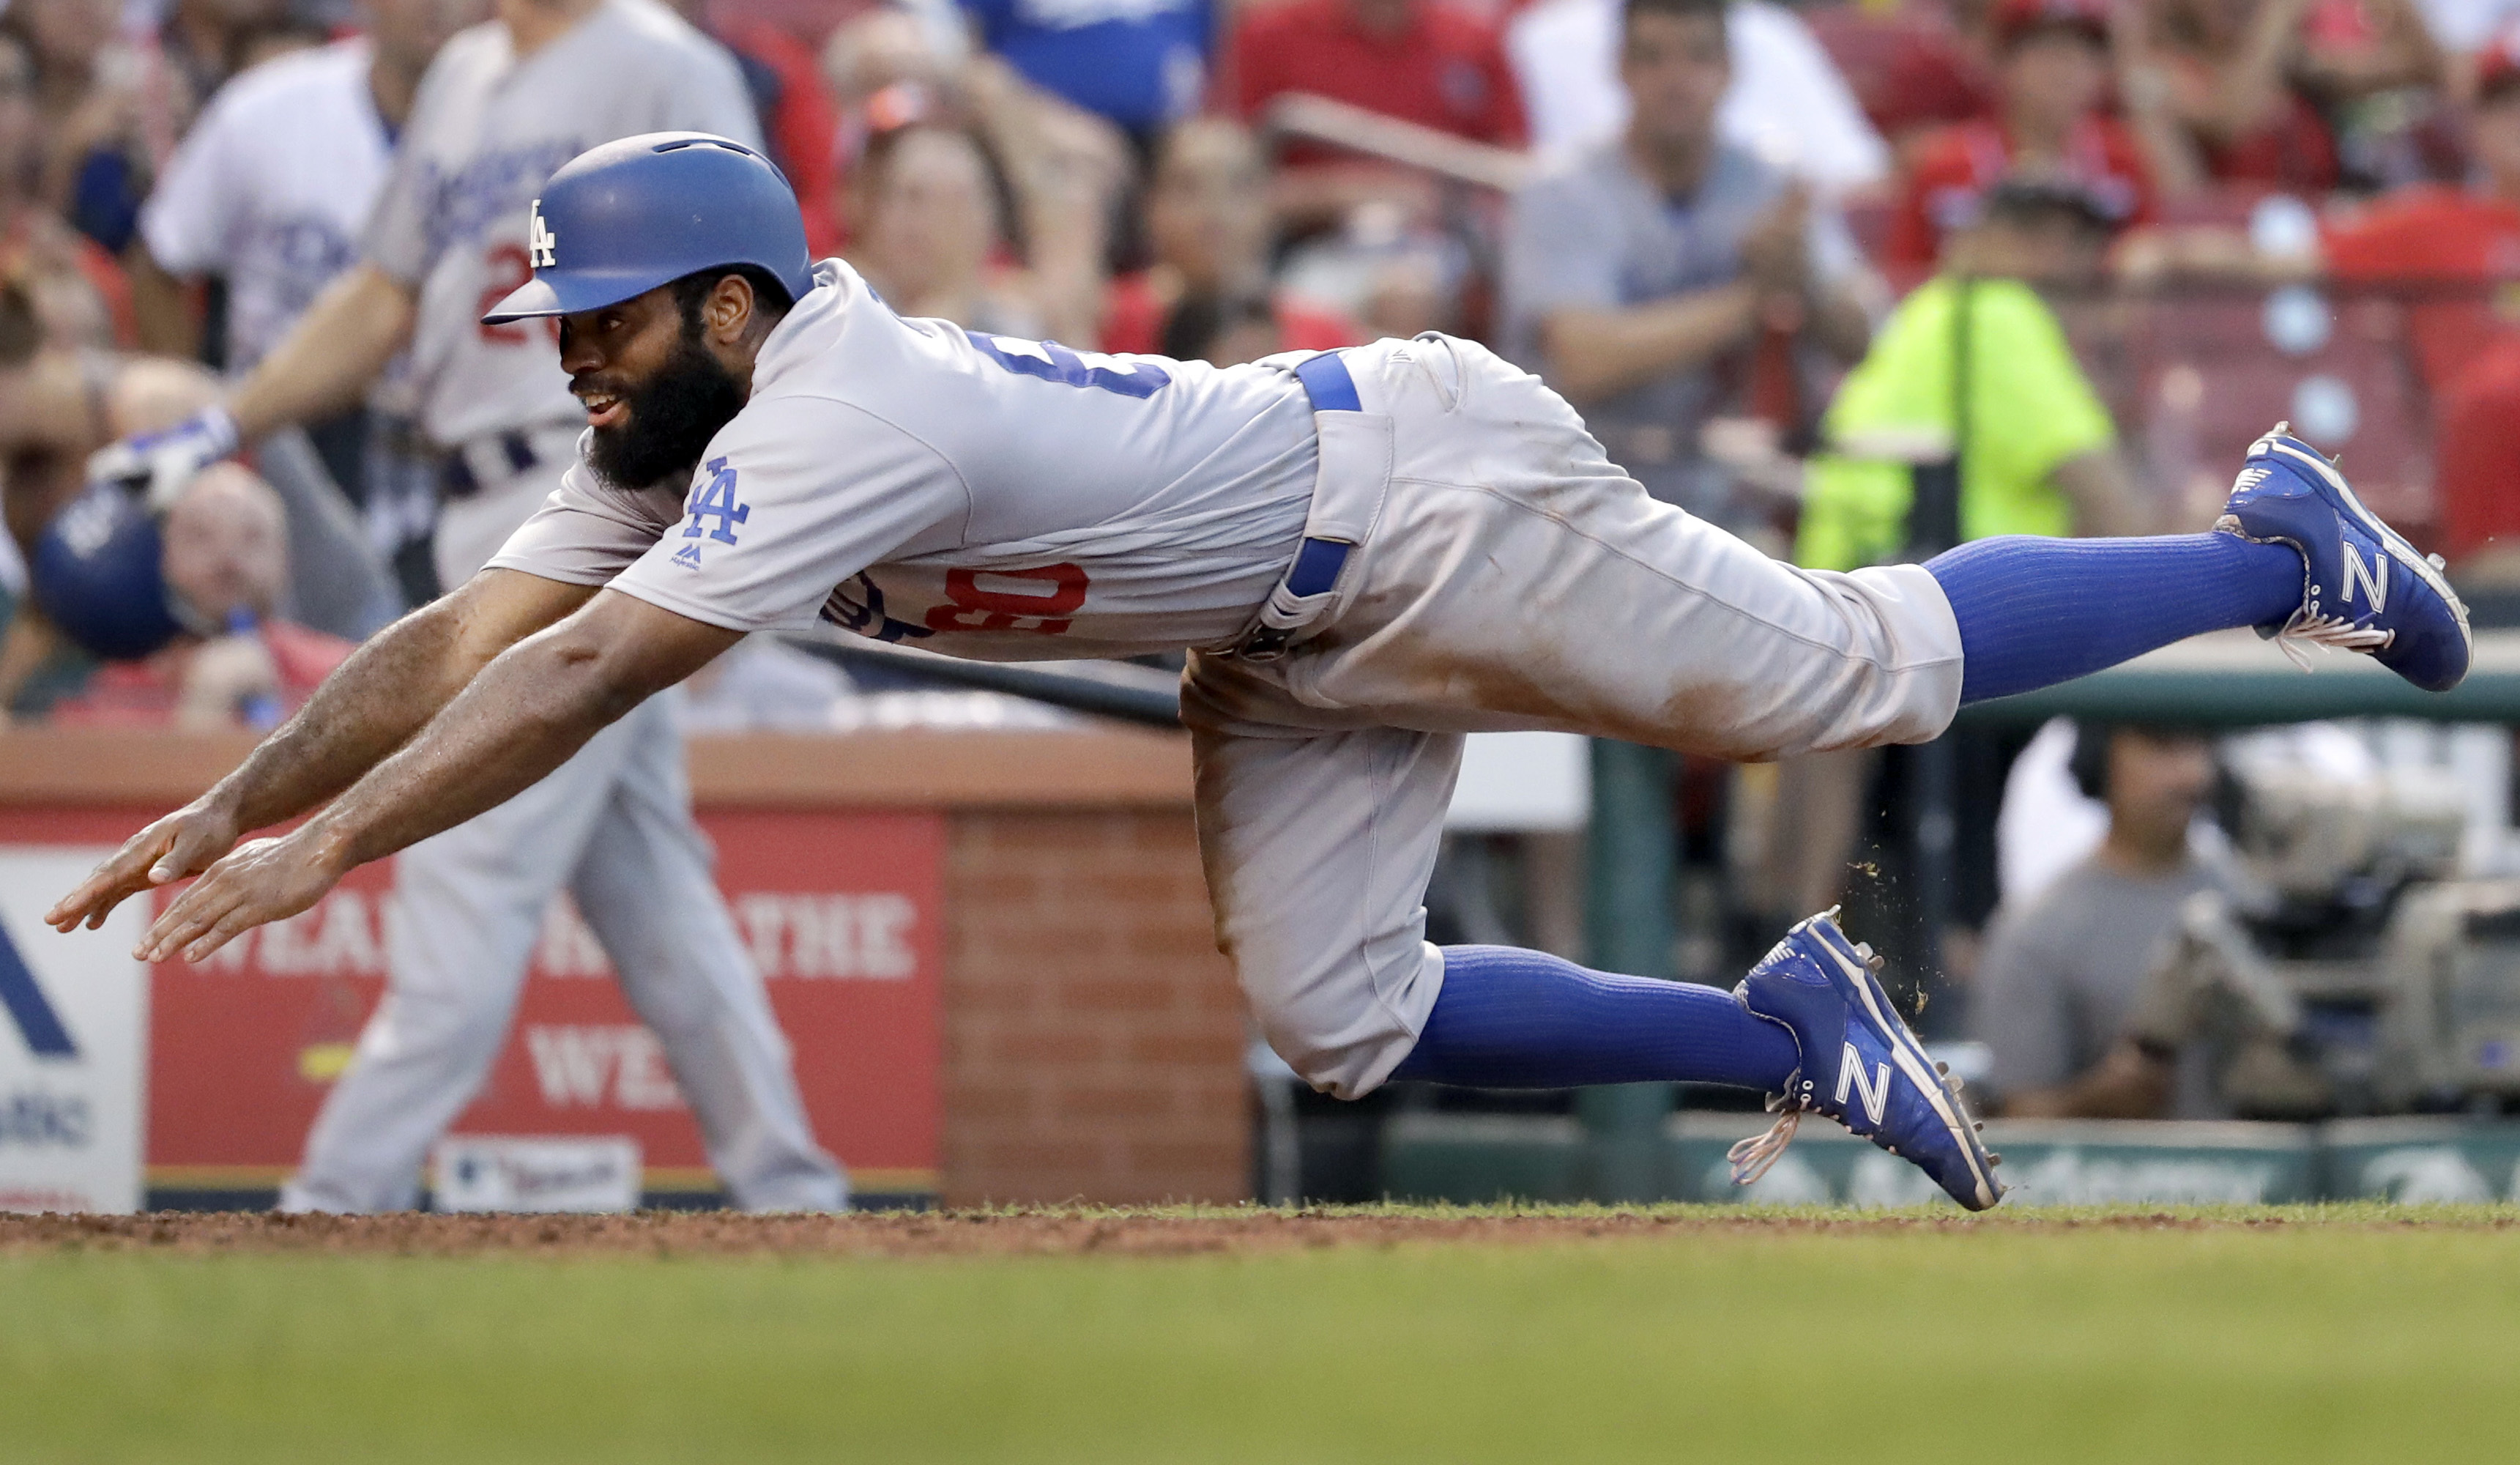 Los Angeles Dodgers' Andrew Toles dives across home plate to score during the sixth inning of a baseball game against the St. Louis Cardinals, Saturday, July 23, 2016, in St. Louis. (AP Photo/Jeff Roberson)